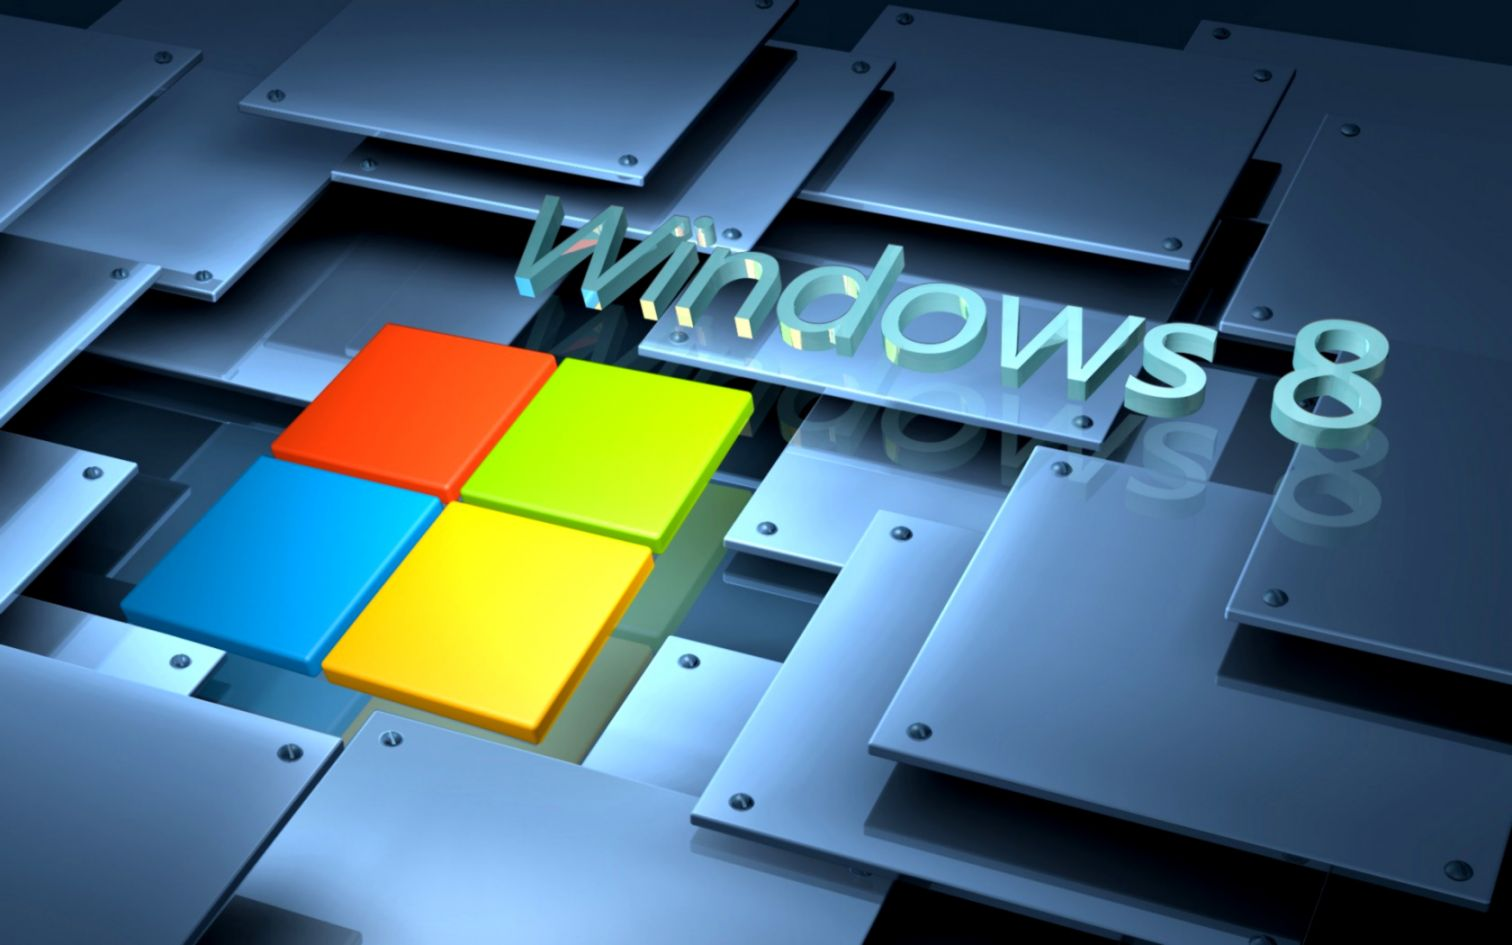 3d wallpaper for windows 8   all hd wallpapers gallerry